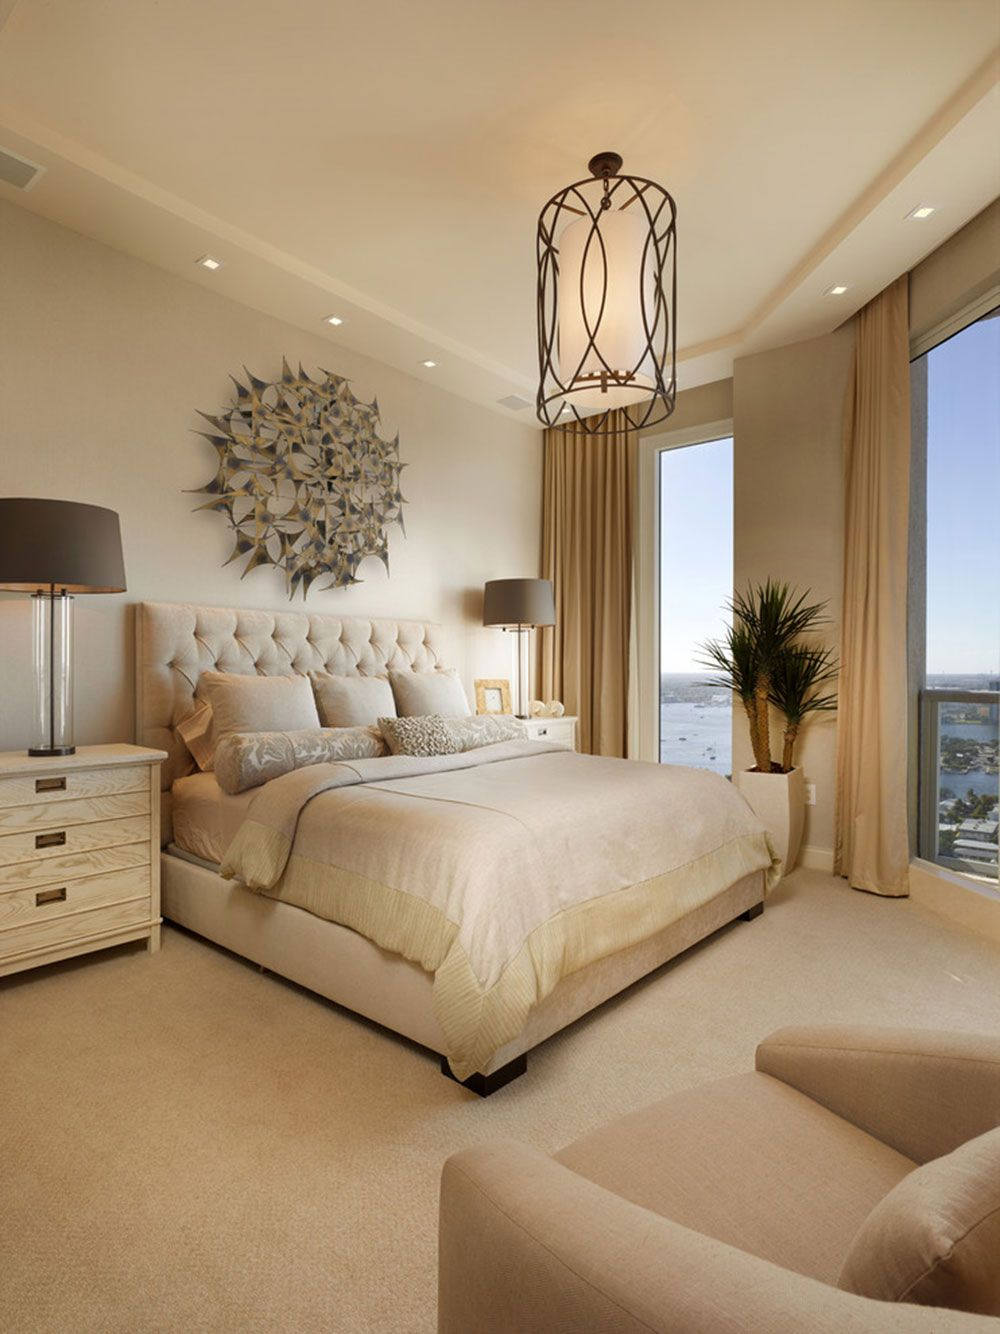 Sweet Dreams With These Beautiful Headboard Design Ideas